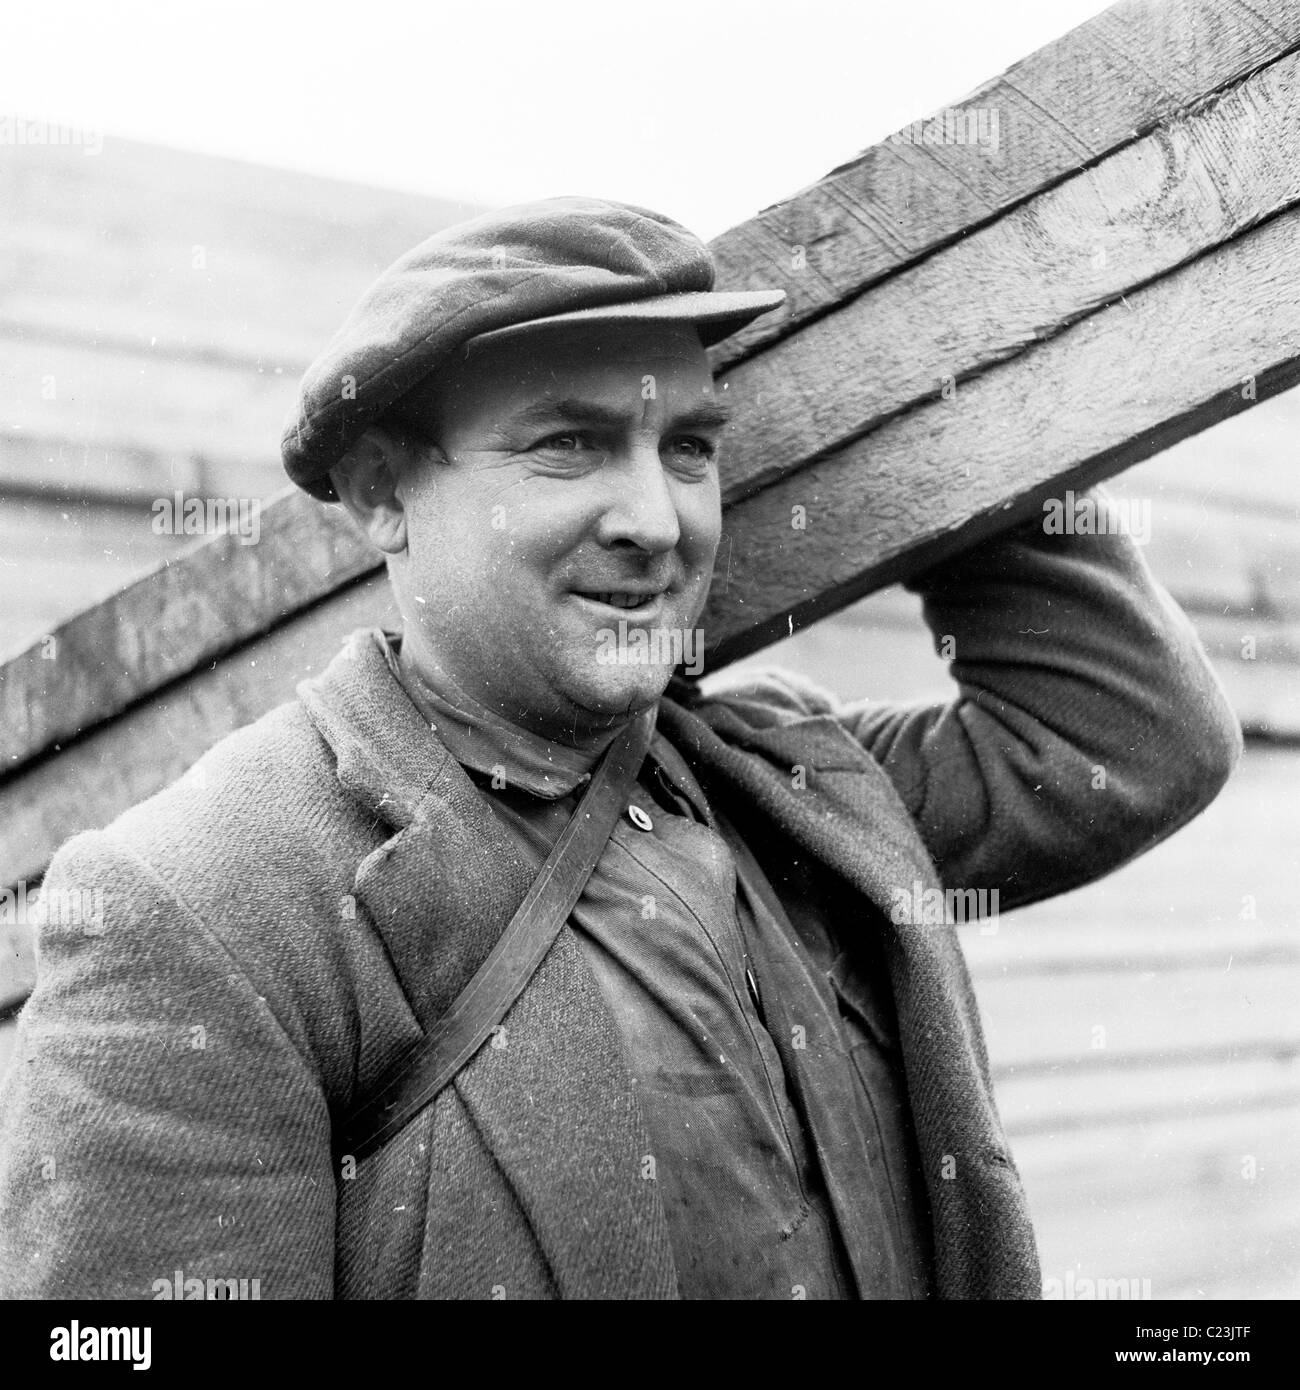 1950s, England. Building worker wearing flat cap and jacket carries planks of wood in this historical picture by - Stock Image